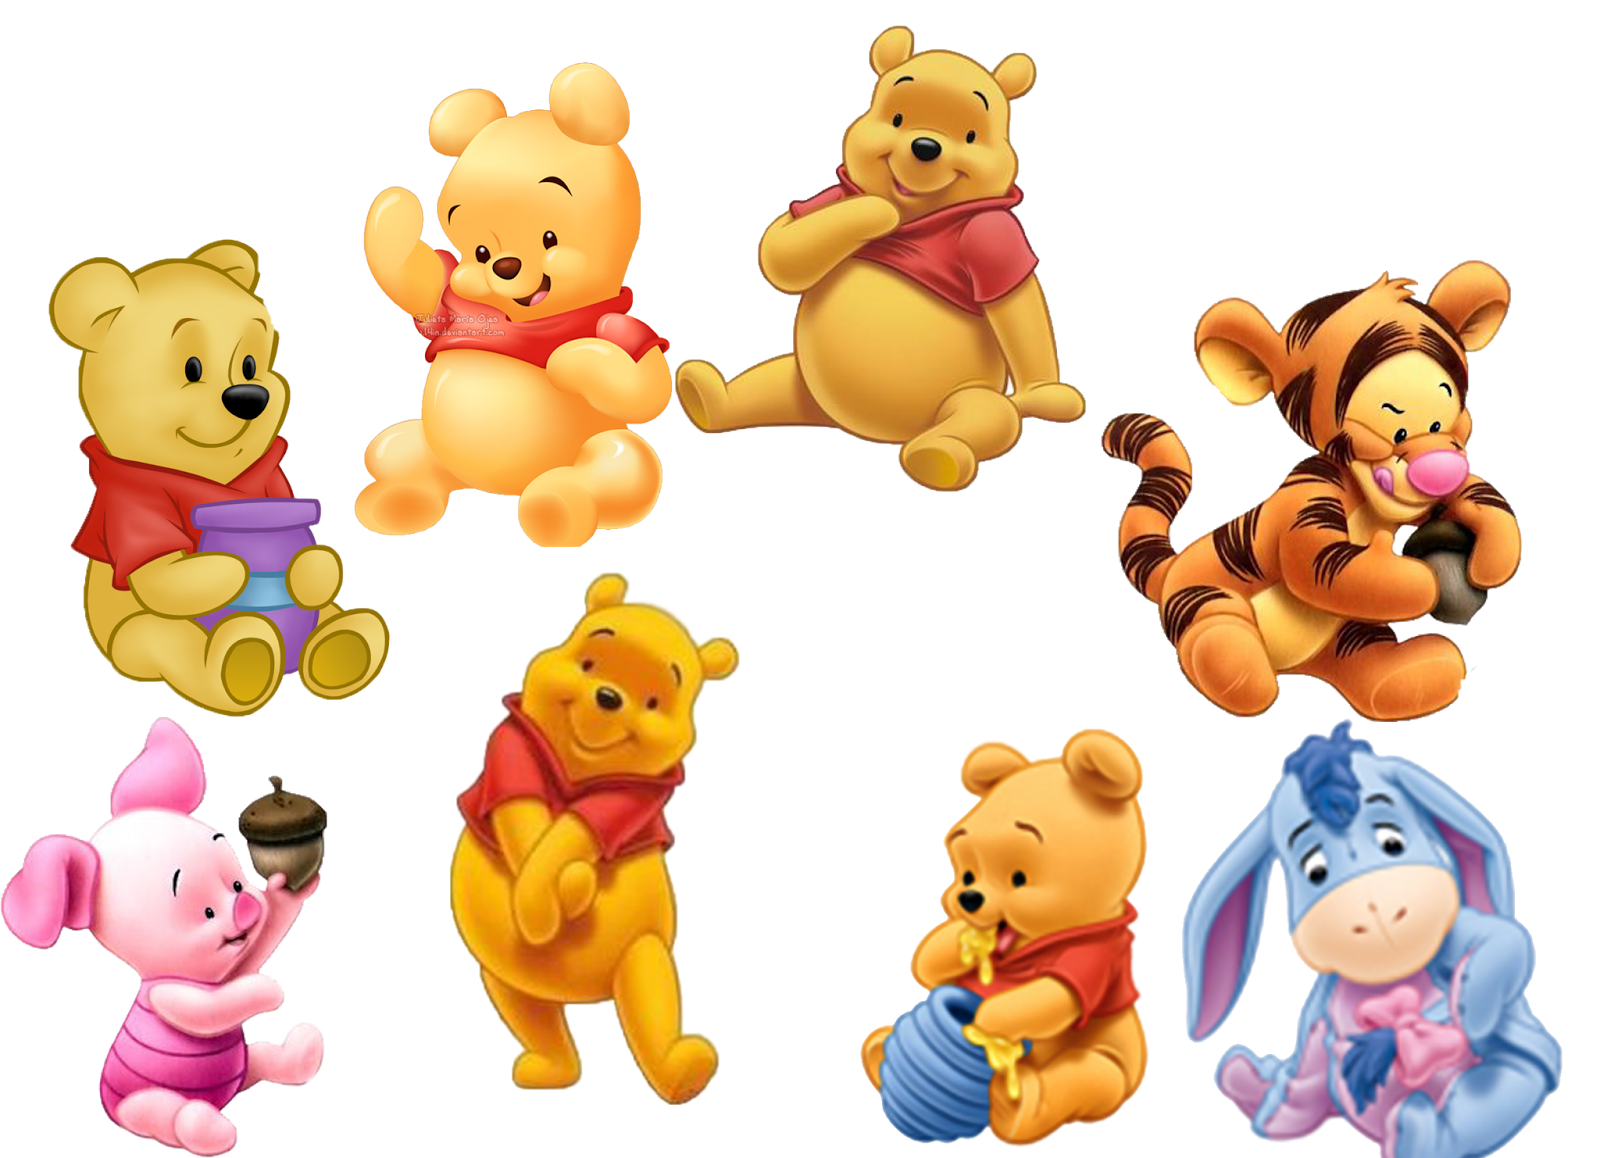 Gallery For gt Baby Winnie The Pooh And Friends Pictures